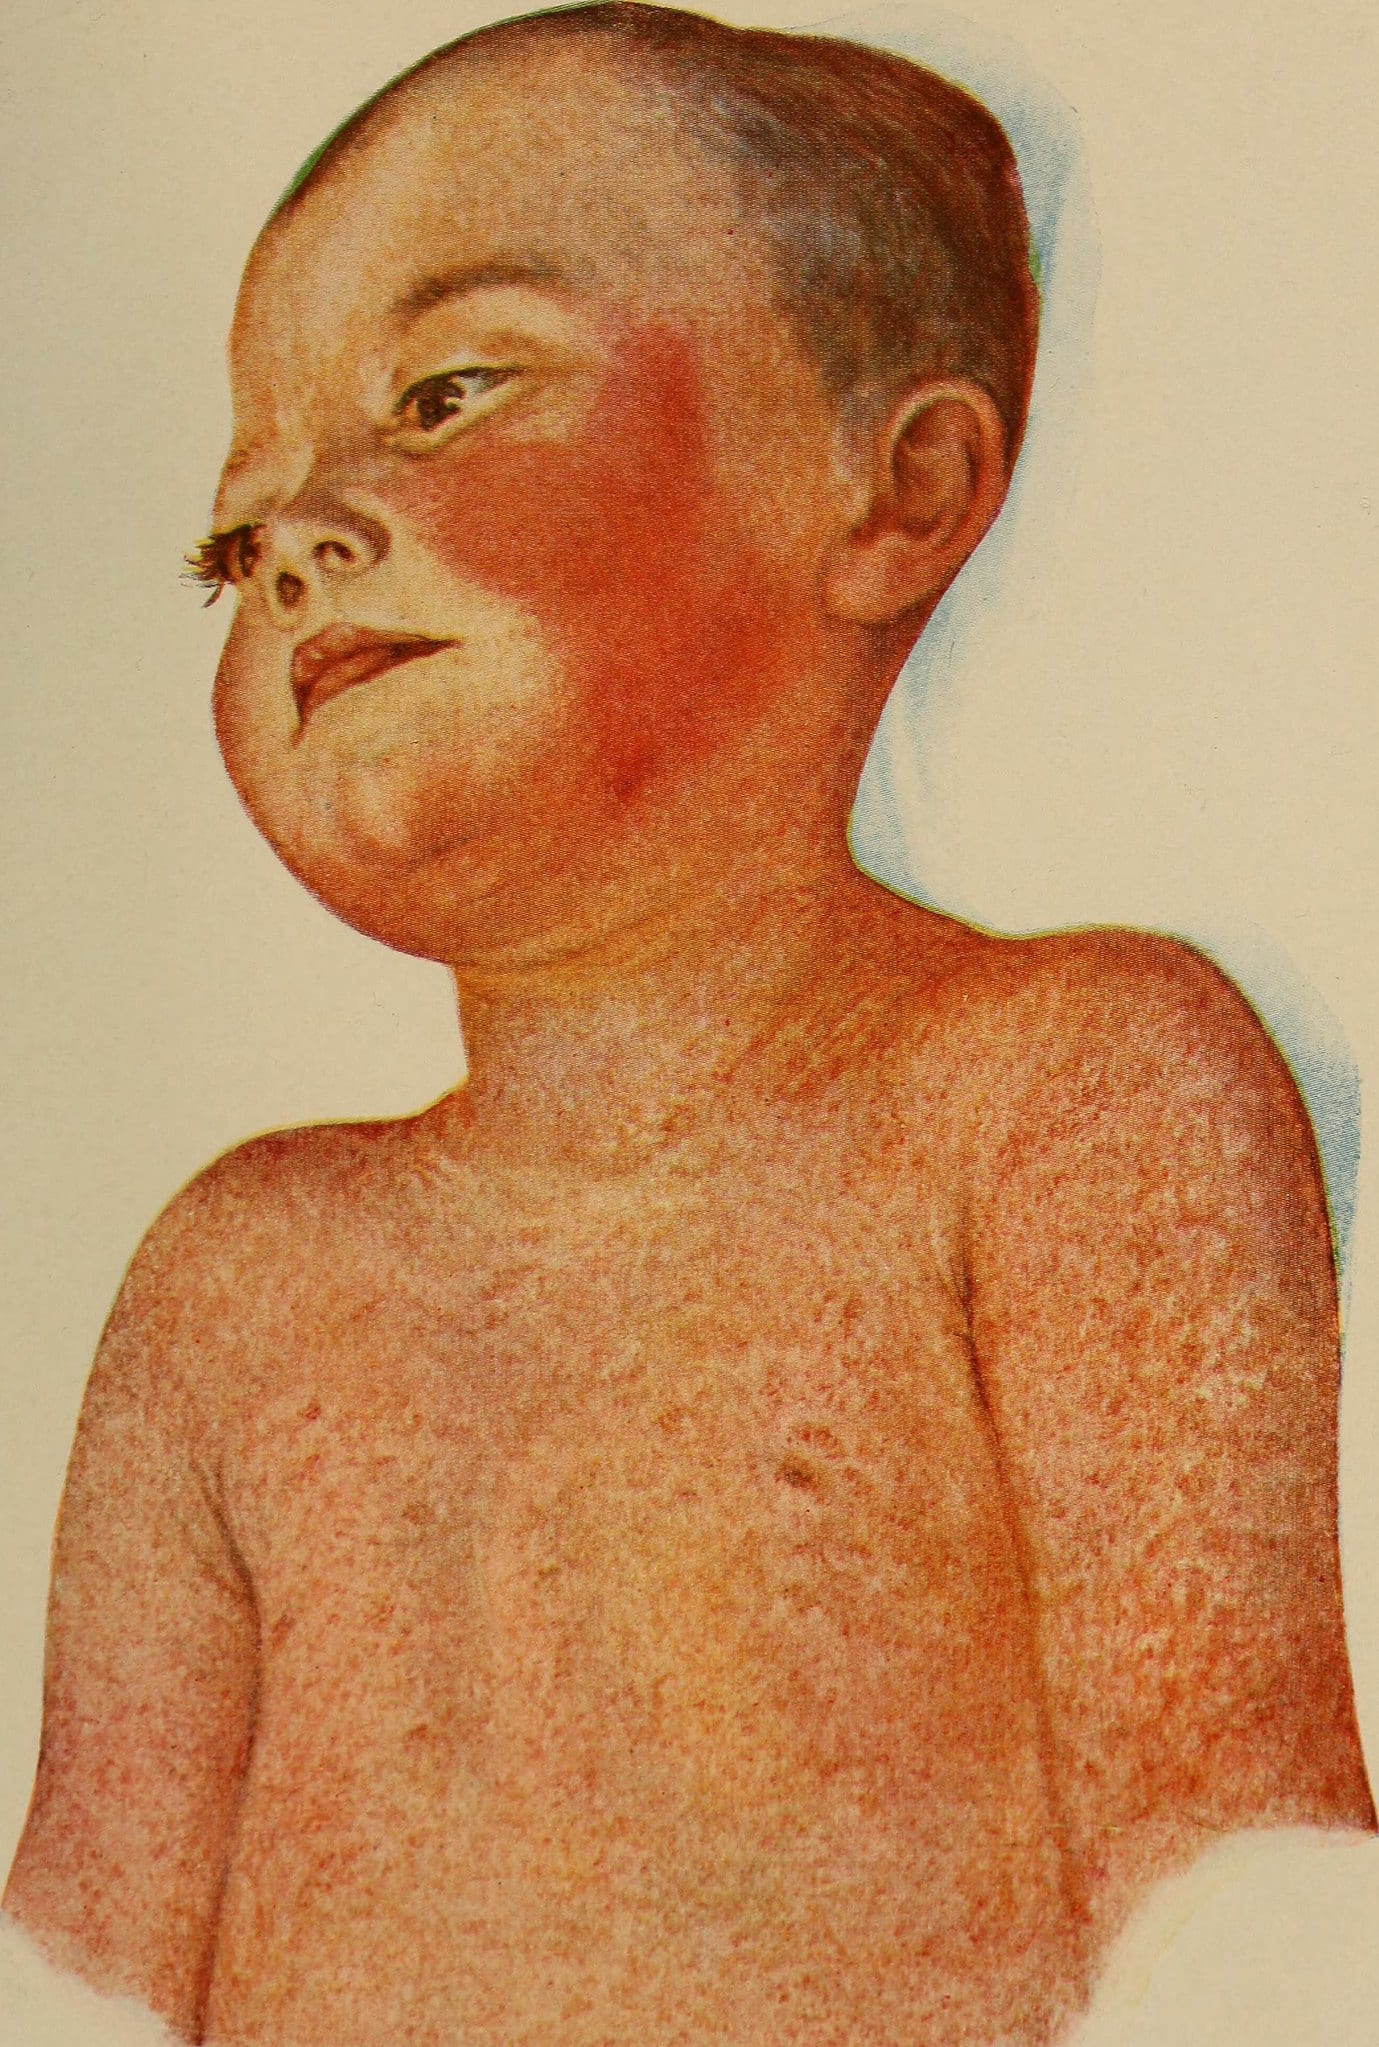 Child suffering scarlet fever